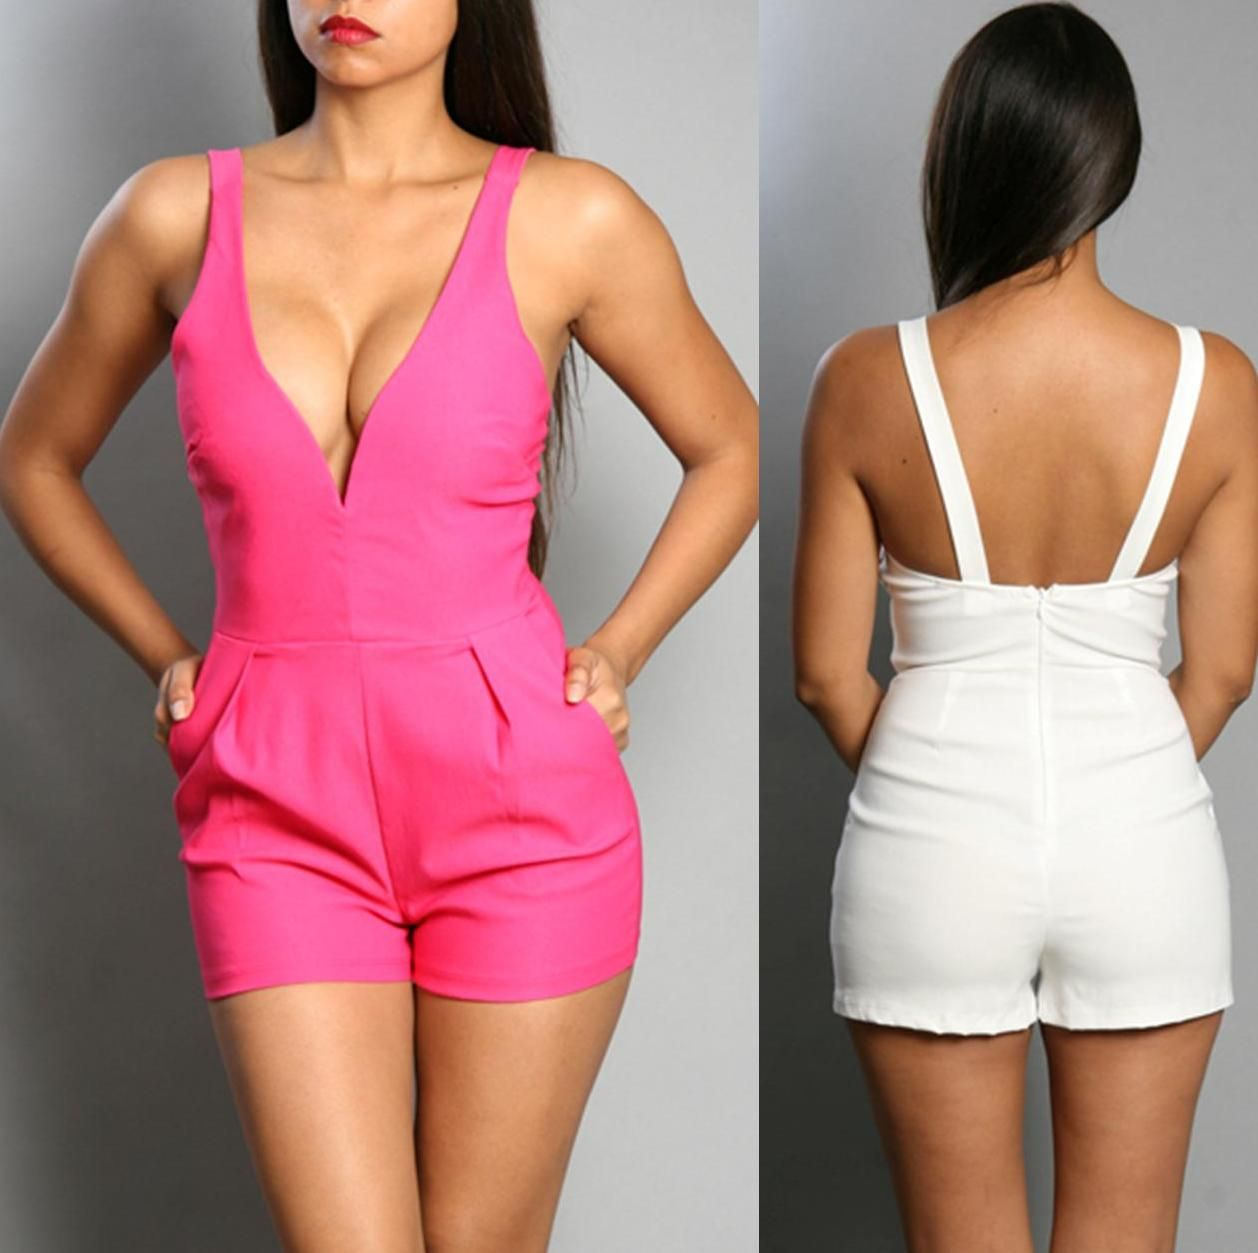 96ed4f24a69 Low Neckline - Low Back Romper - Sleeveless - Fits True To Size - Side  Pockets - Zipper Back Closure Comes in your pick of fuchsia